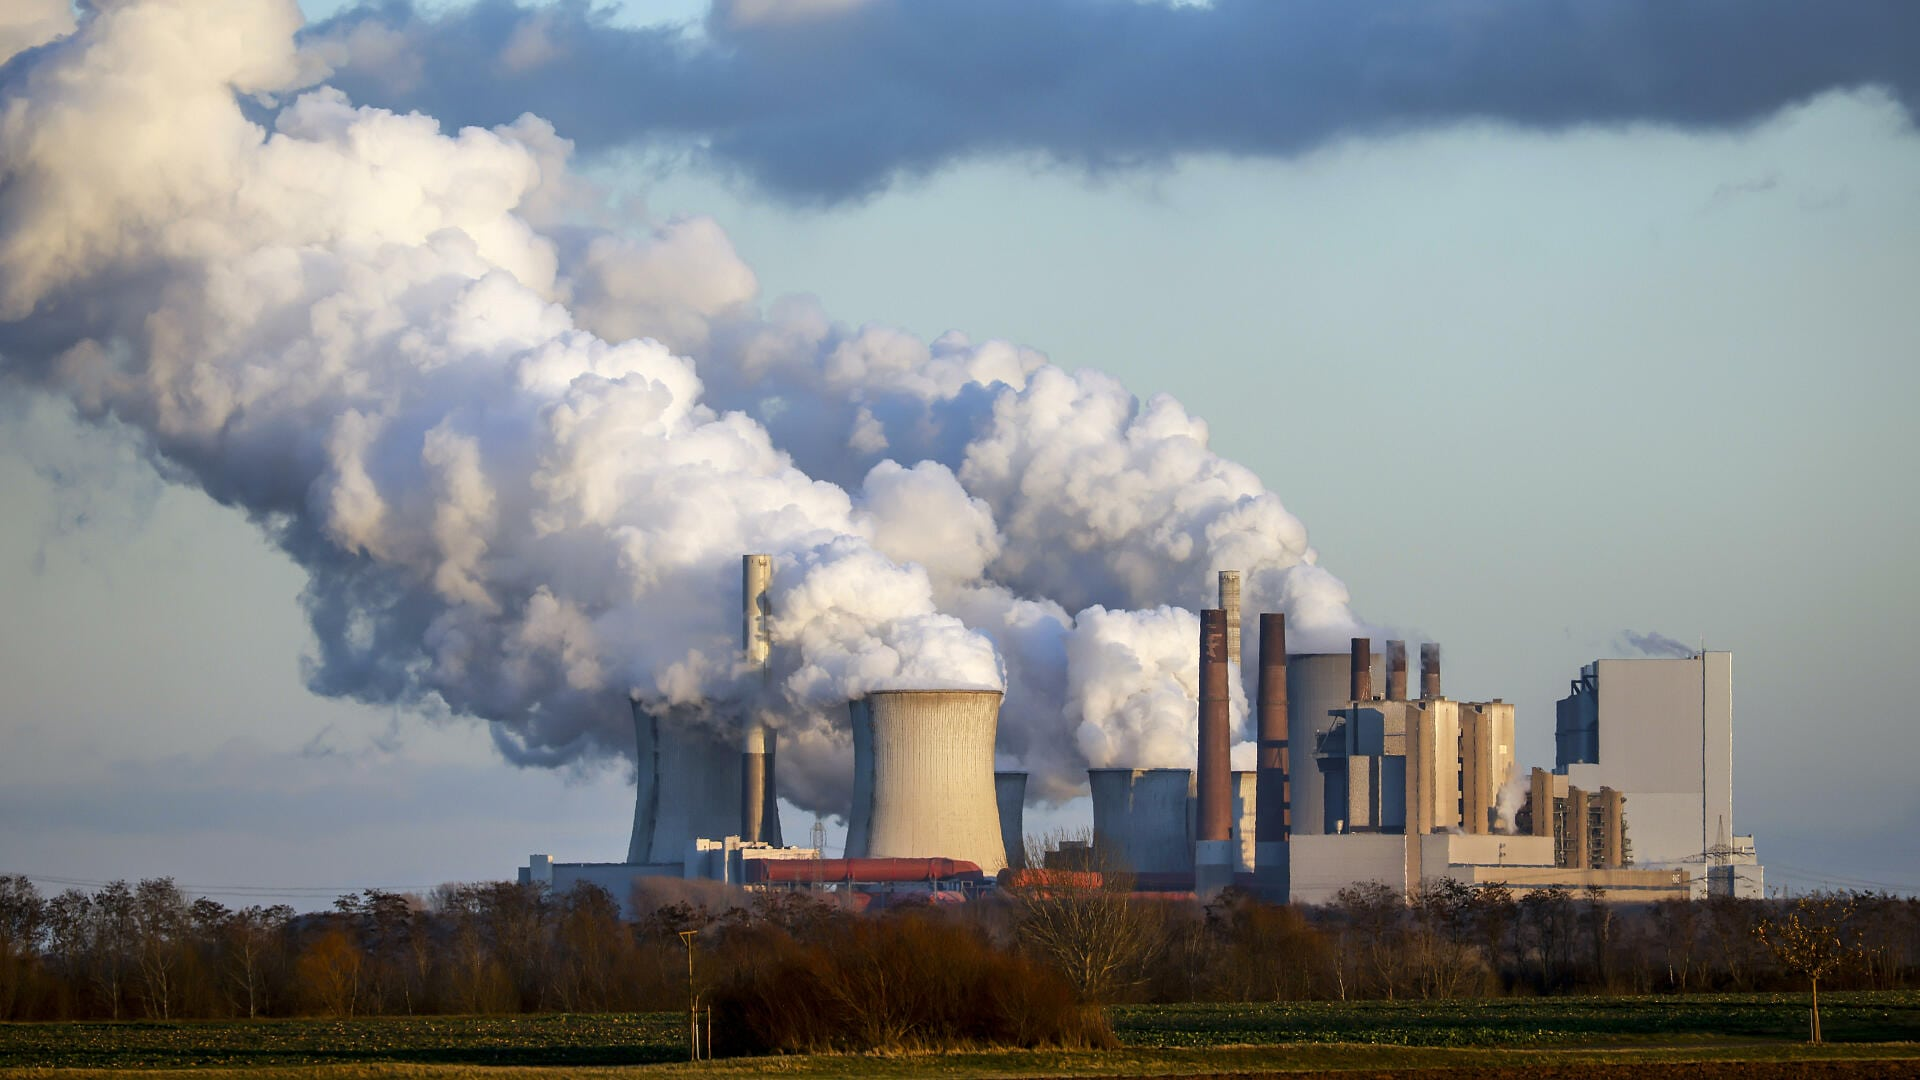 Global warming: The world is heading towards 2.4 degrees